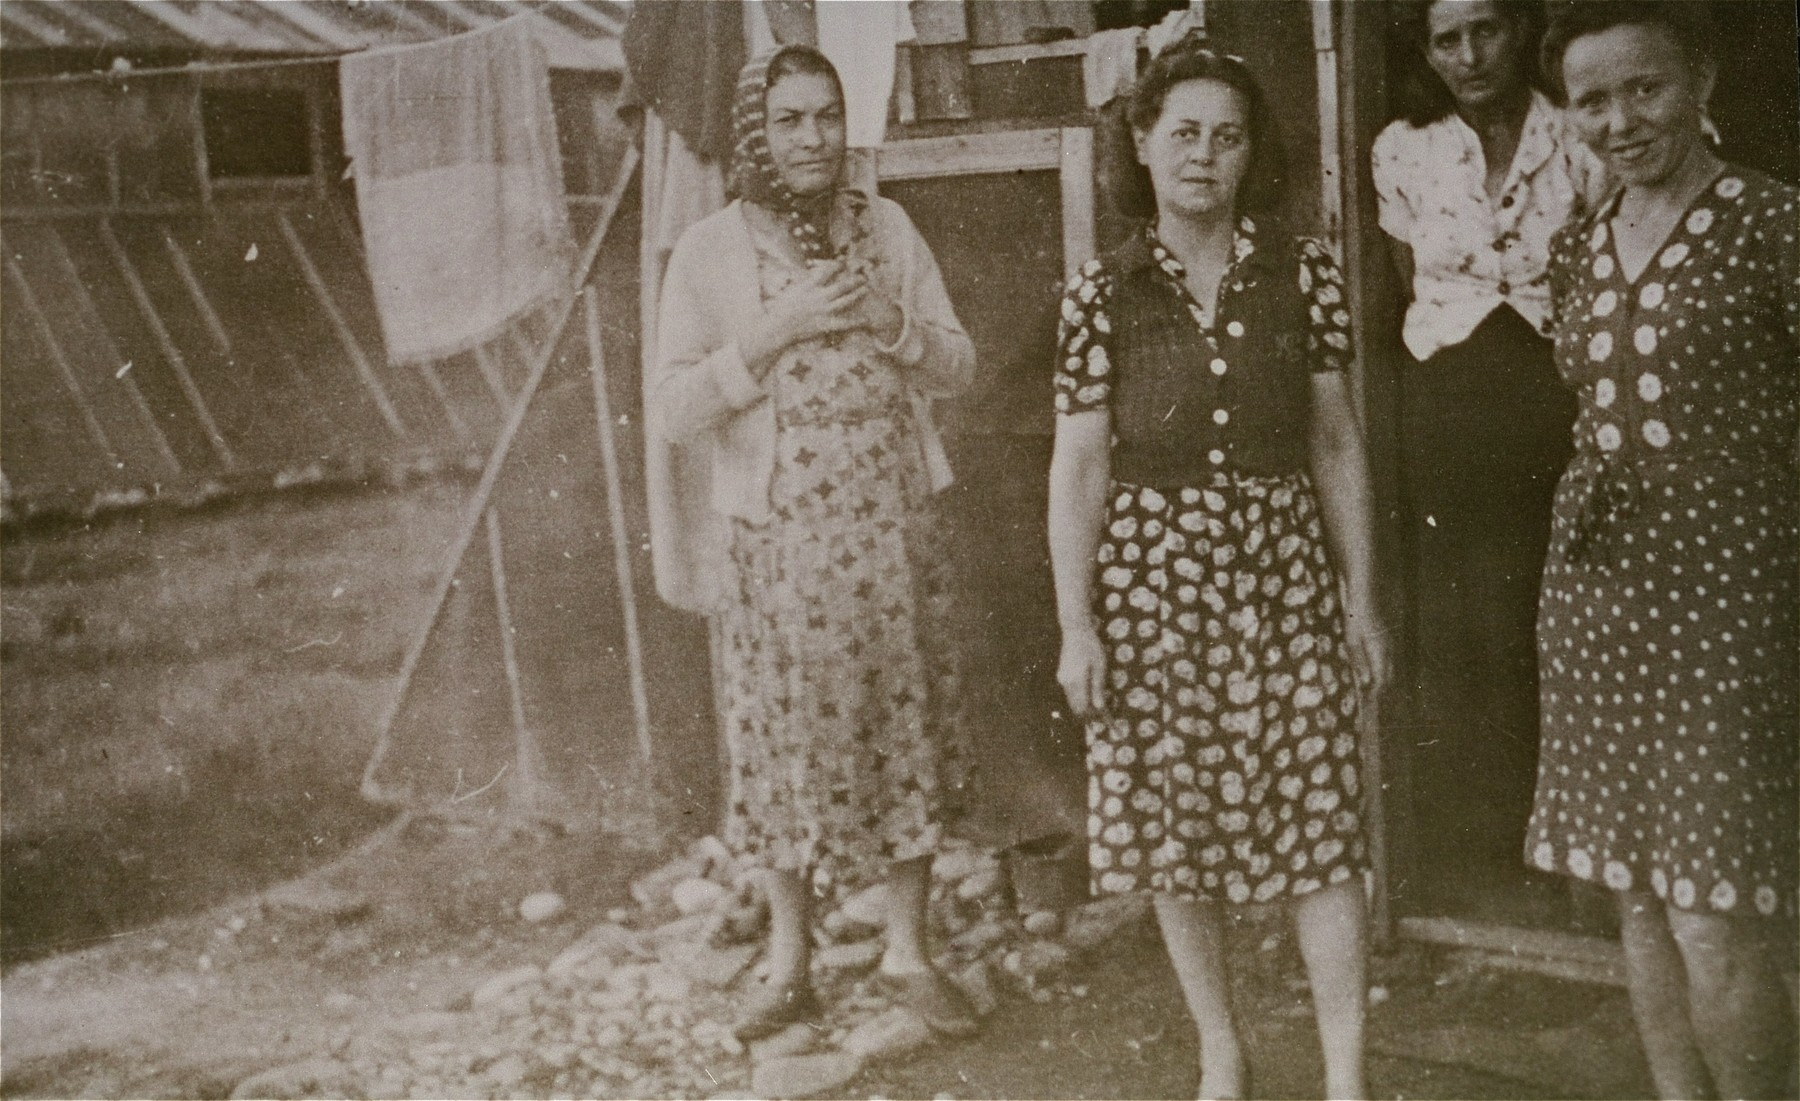 Women prisoners in the Gurs transit camp.  This photograph was shot secretly by Alice Resch-Synnestvedt during her stay in Gurs as a delegate of the American Friends Service Committee.